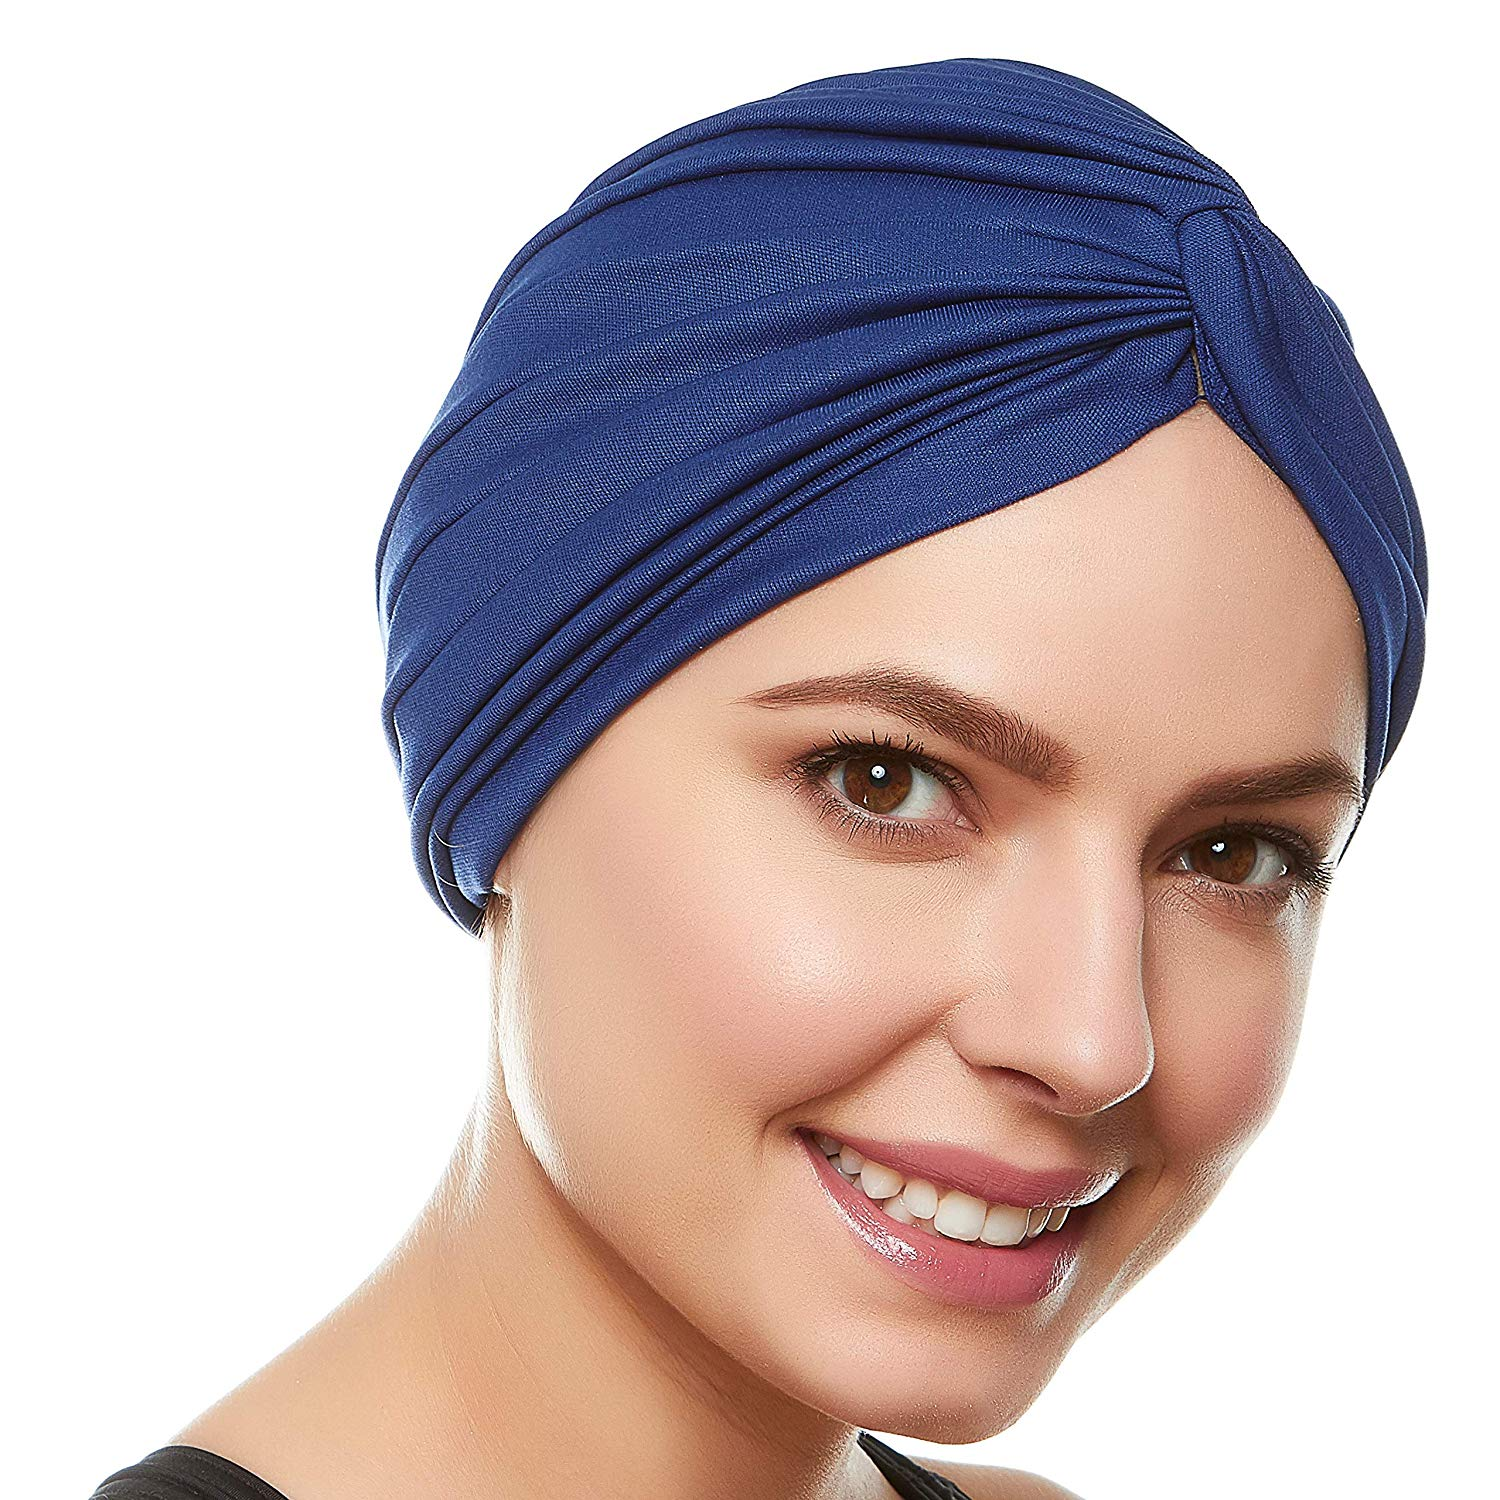 Twisted Pleated Stretchable Polyester Women's Swim Bathing Turban Head Cover / Sun Cap - Black